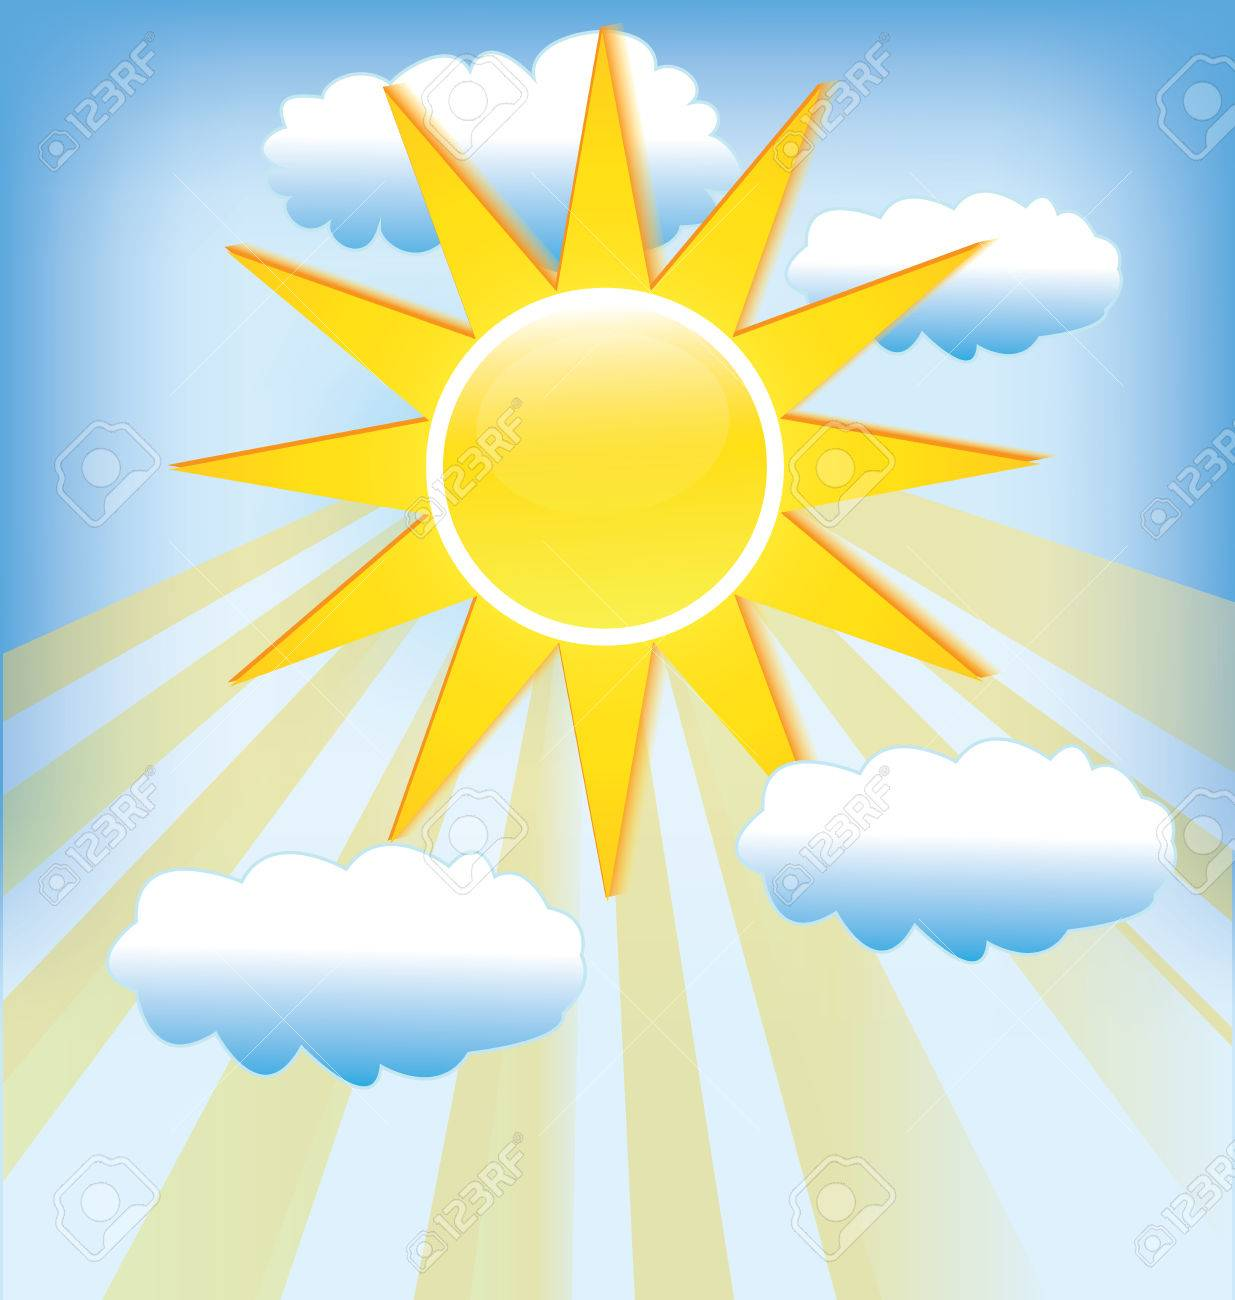 hight resolution of sun rays cloudy blue sky background template stock vector 74478973